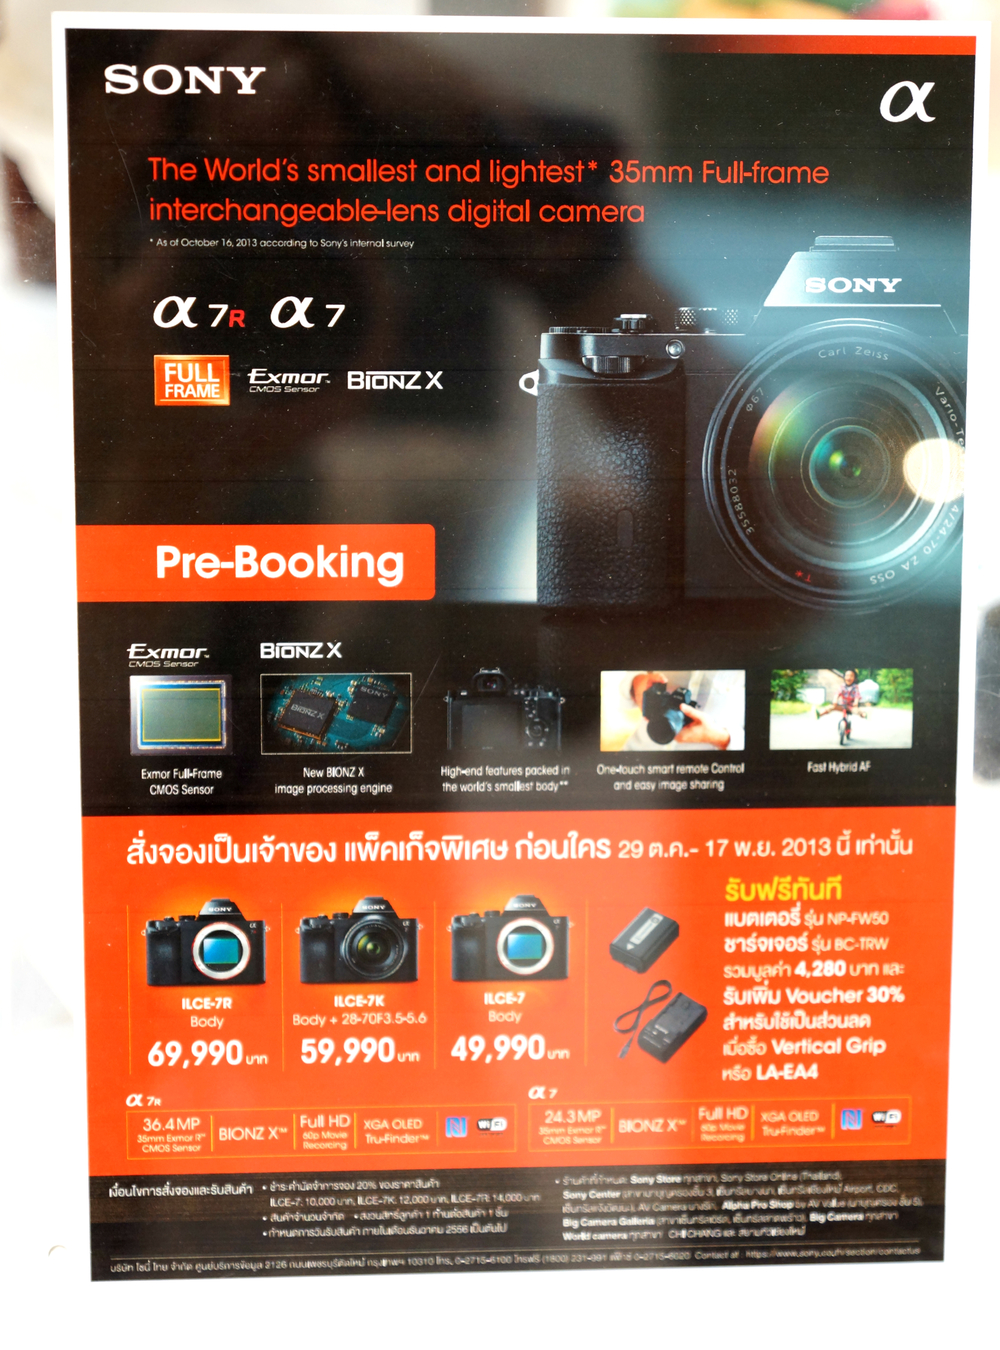 Sony a7 and a7r prices